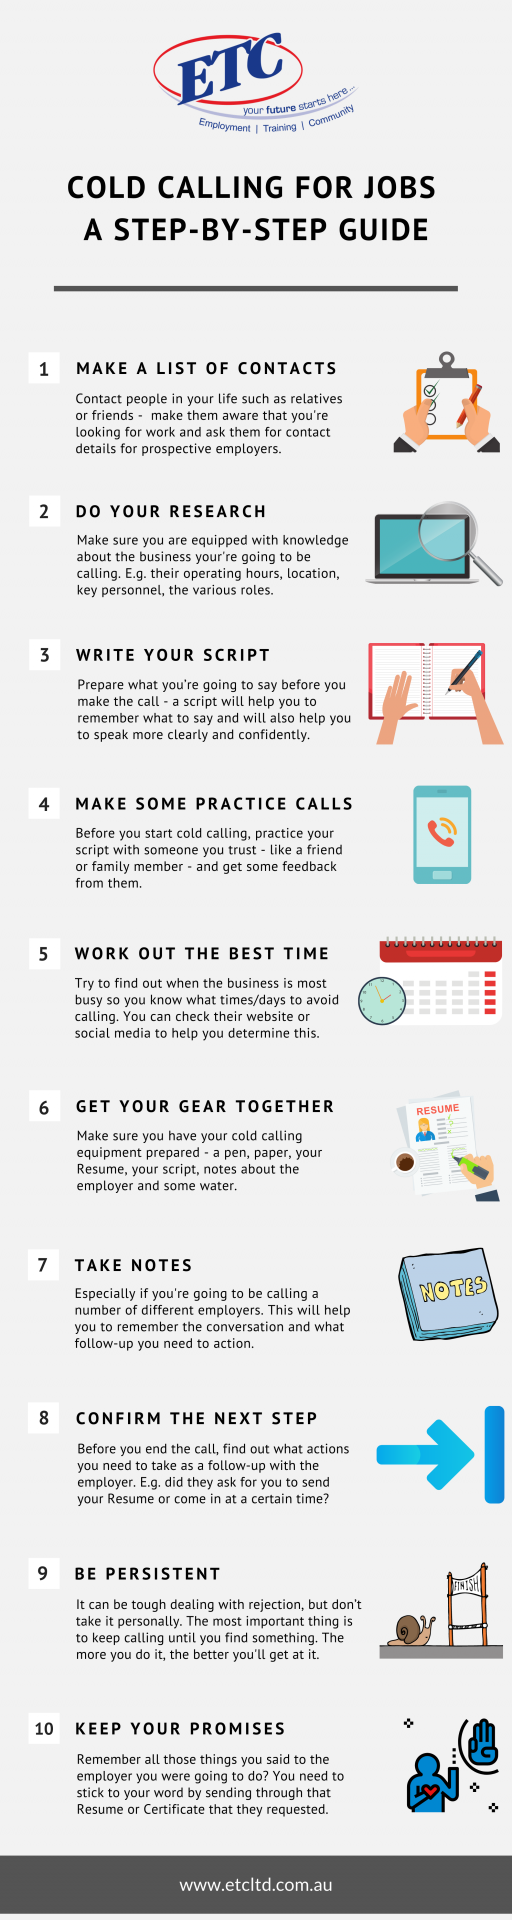 An infographic with tips on cold calling for jobs